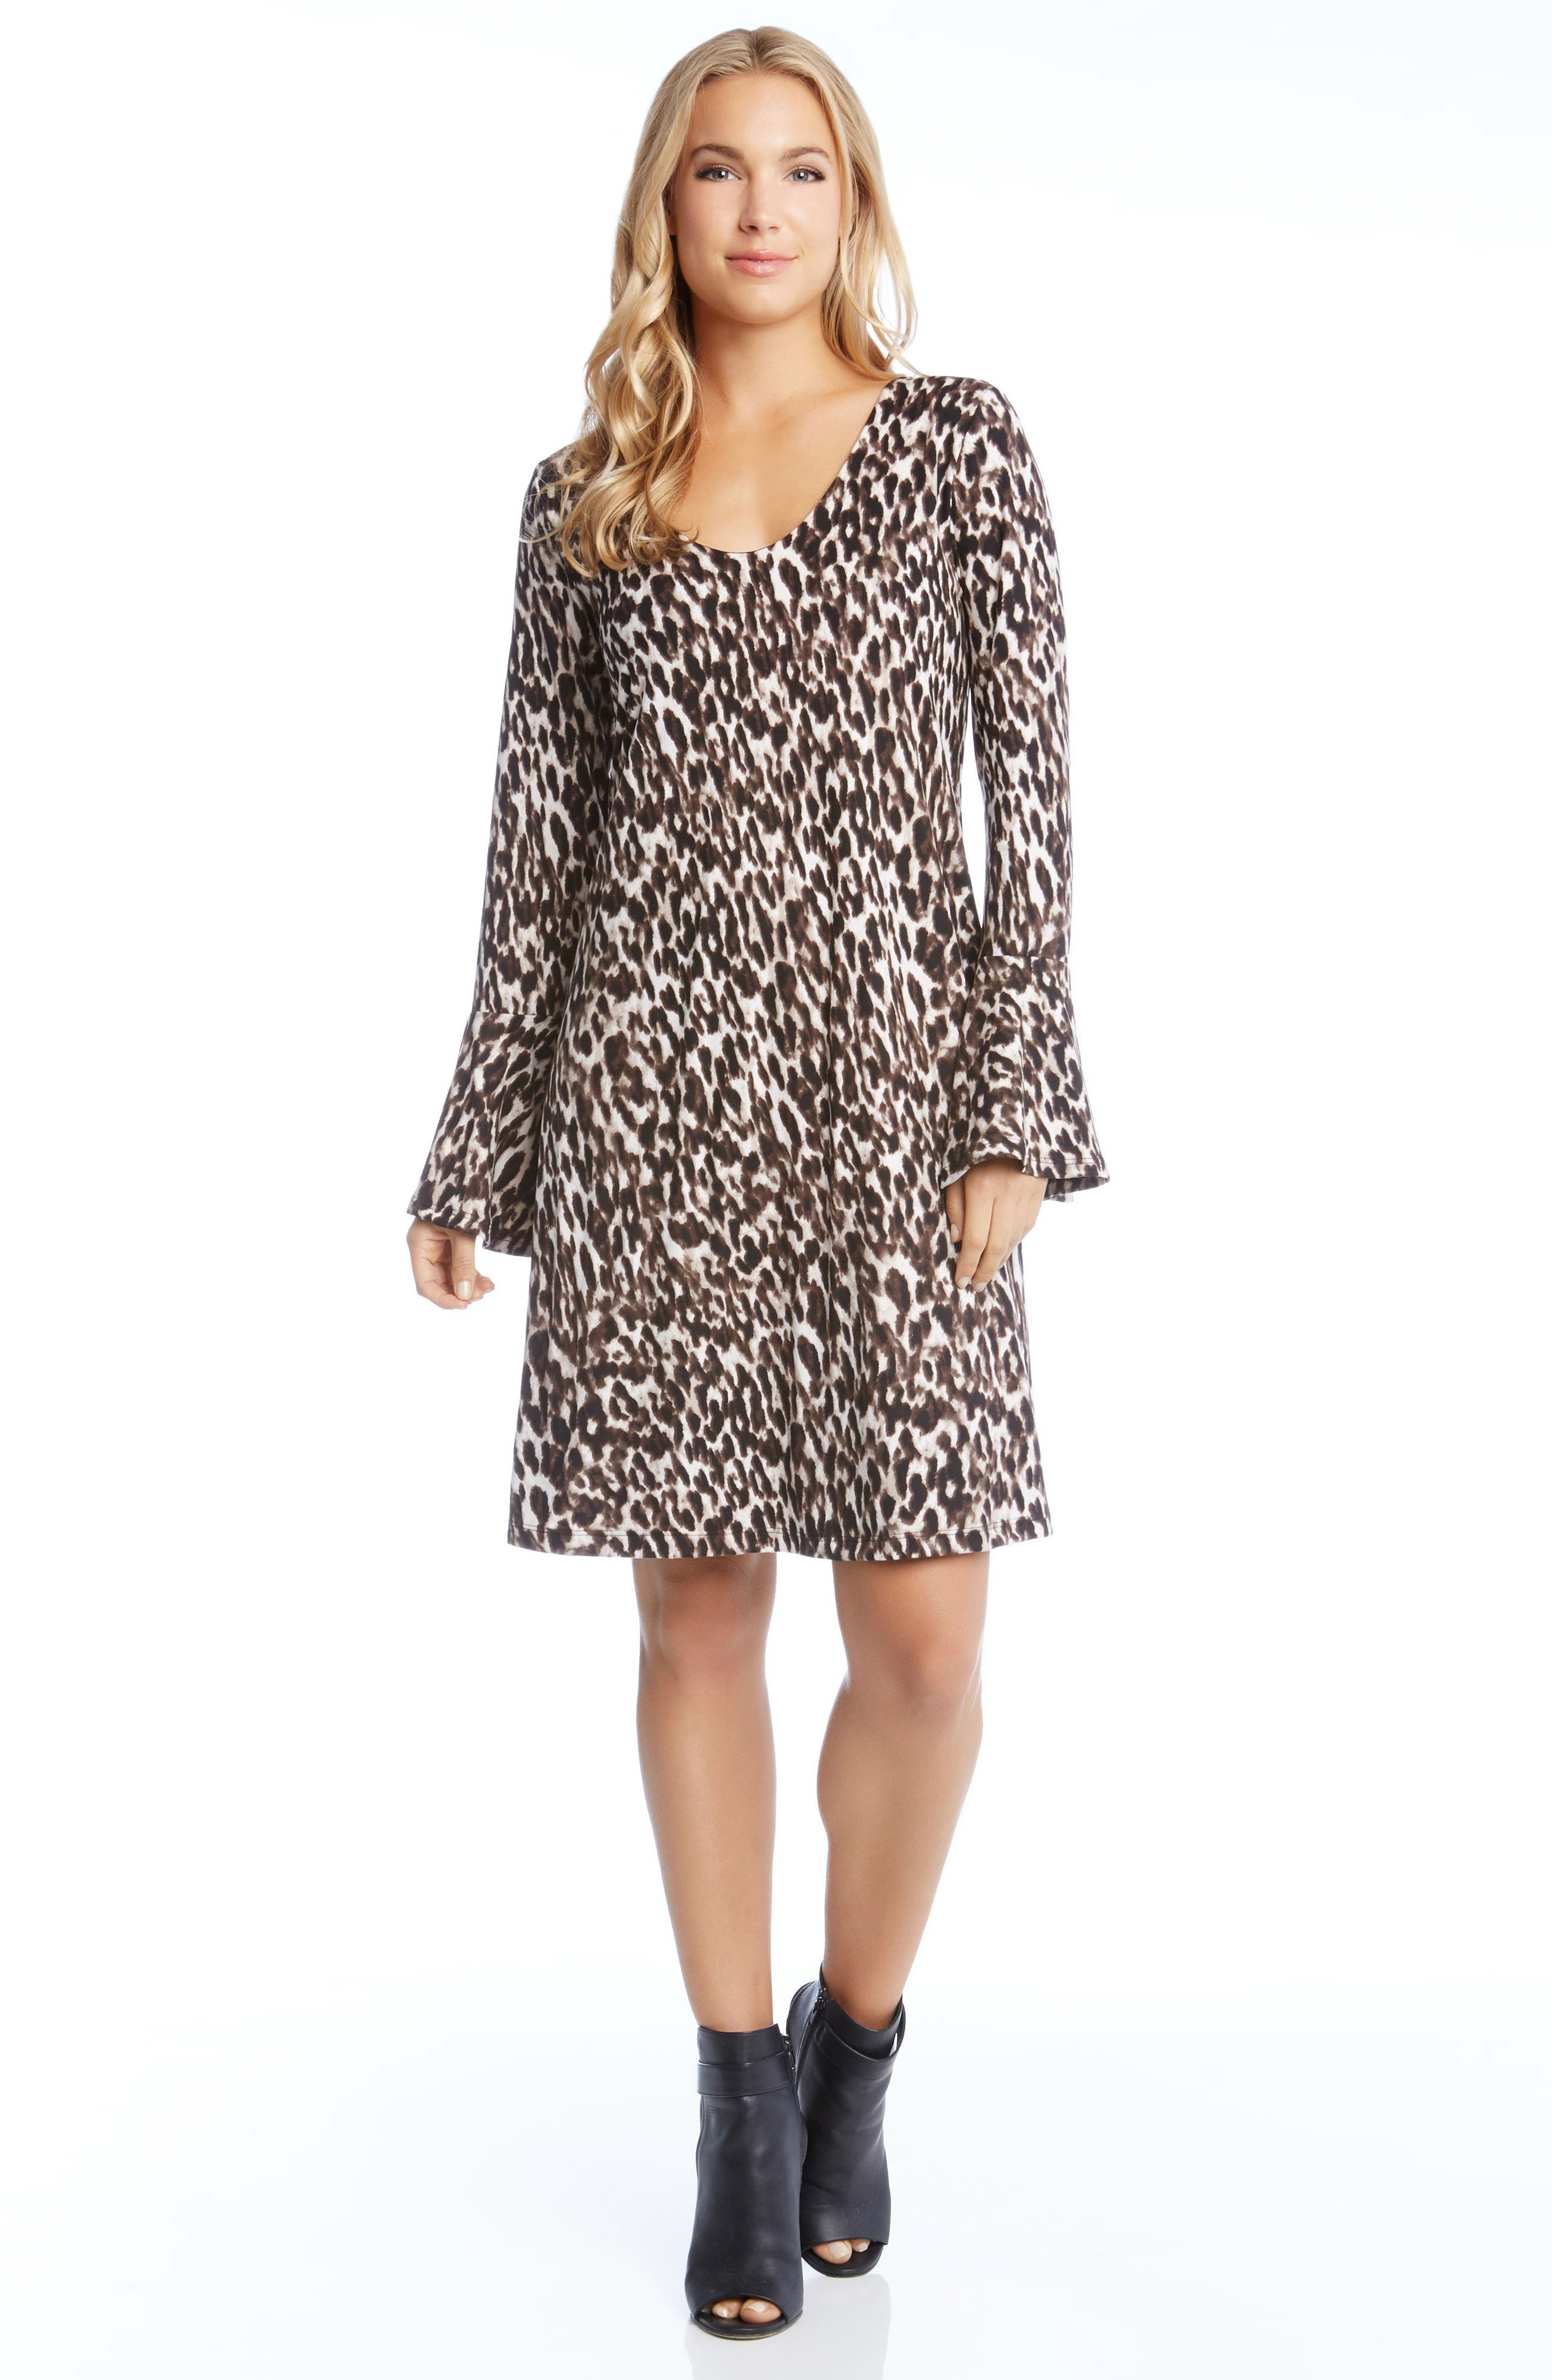 Bell Sleeve Brushed Knit Dress,                             Alternate thumbnail 3, color,                             008